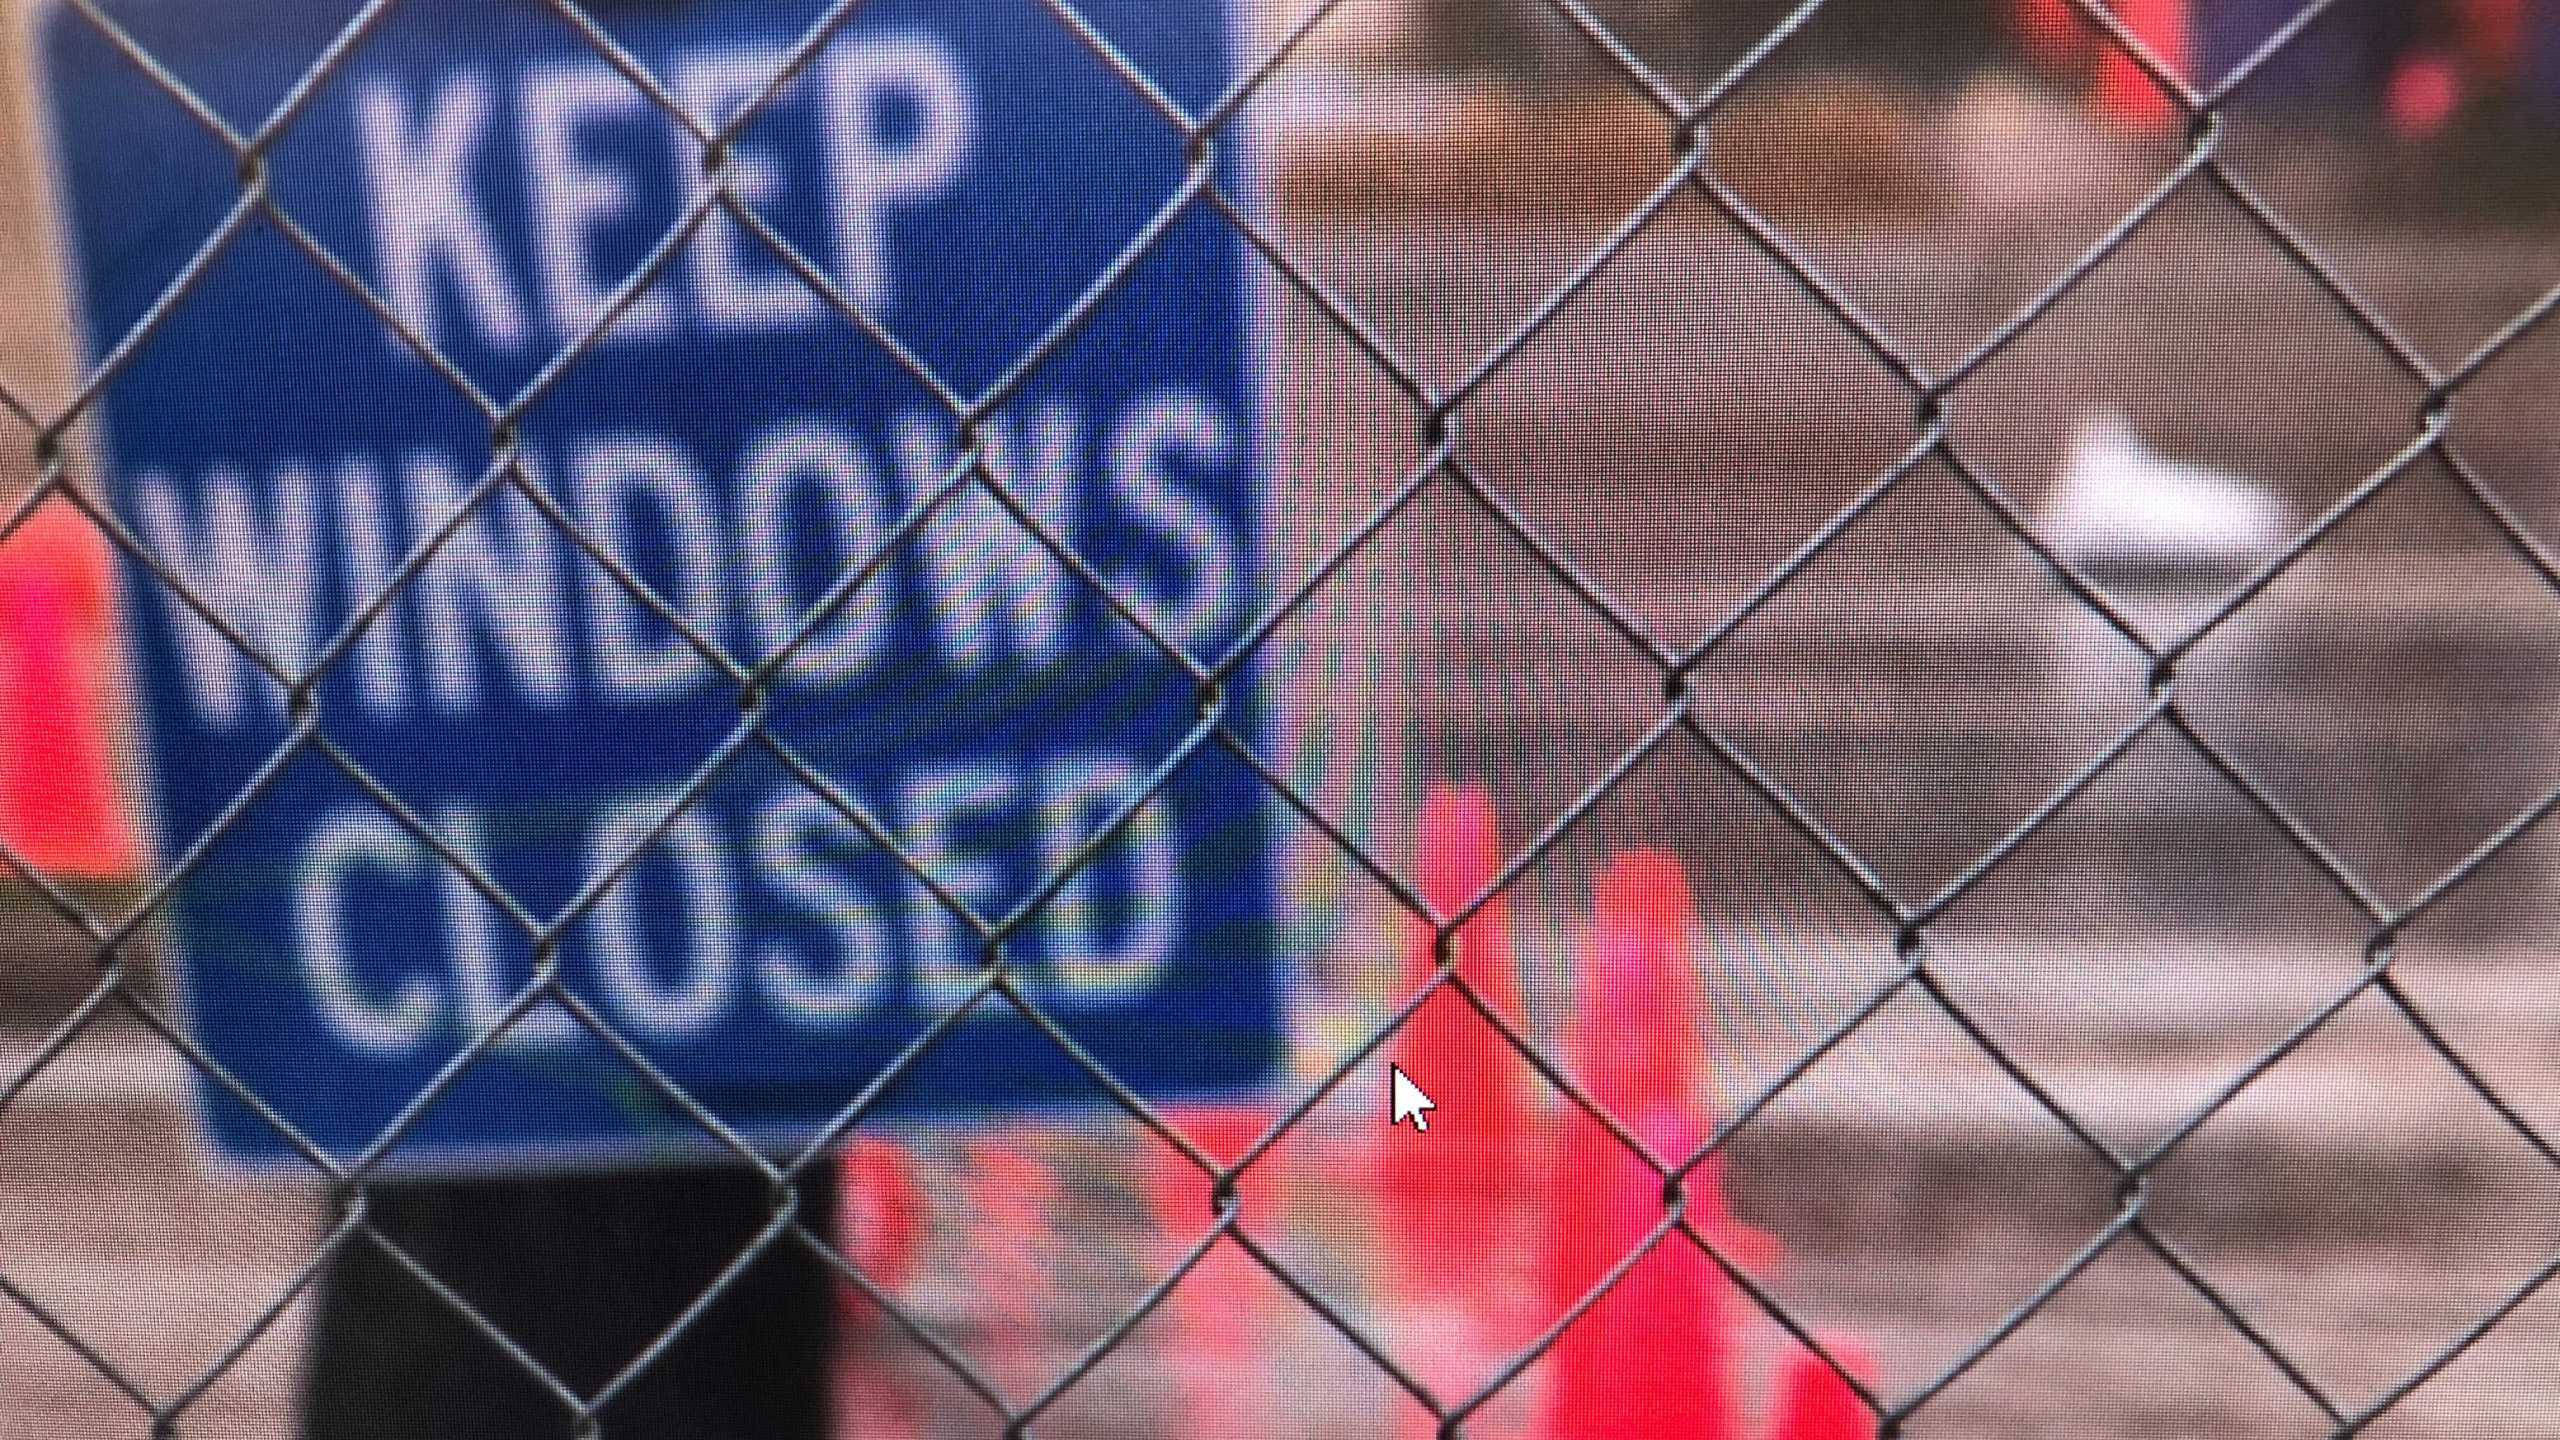 St. Johns COVID-19 test site closed Dec. 31 due to rainy weather (KXAN/Julie Karam)